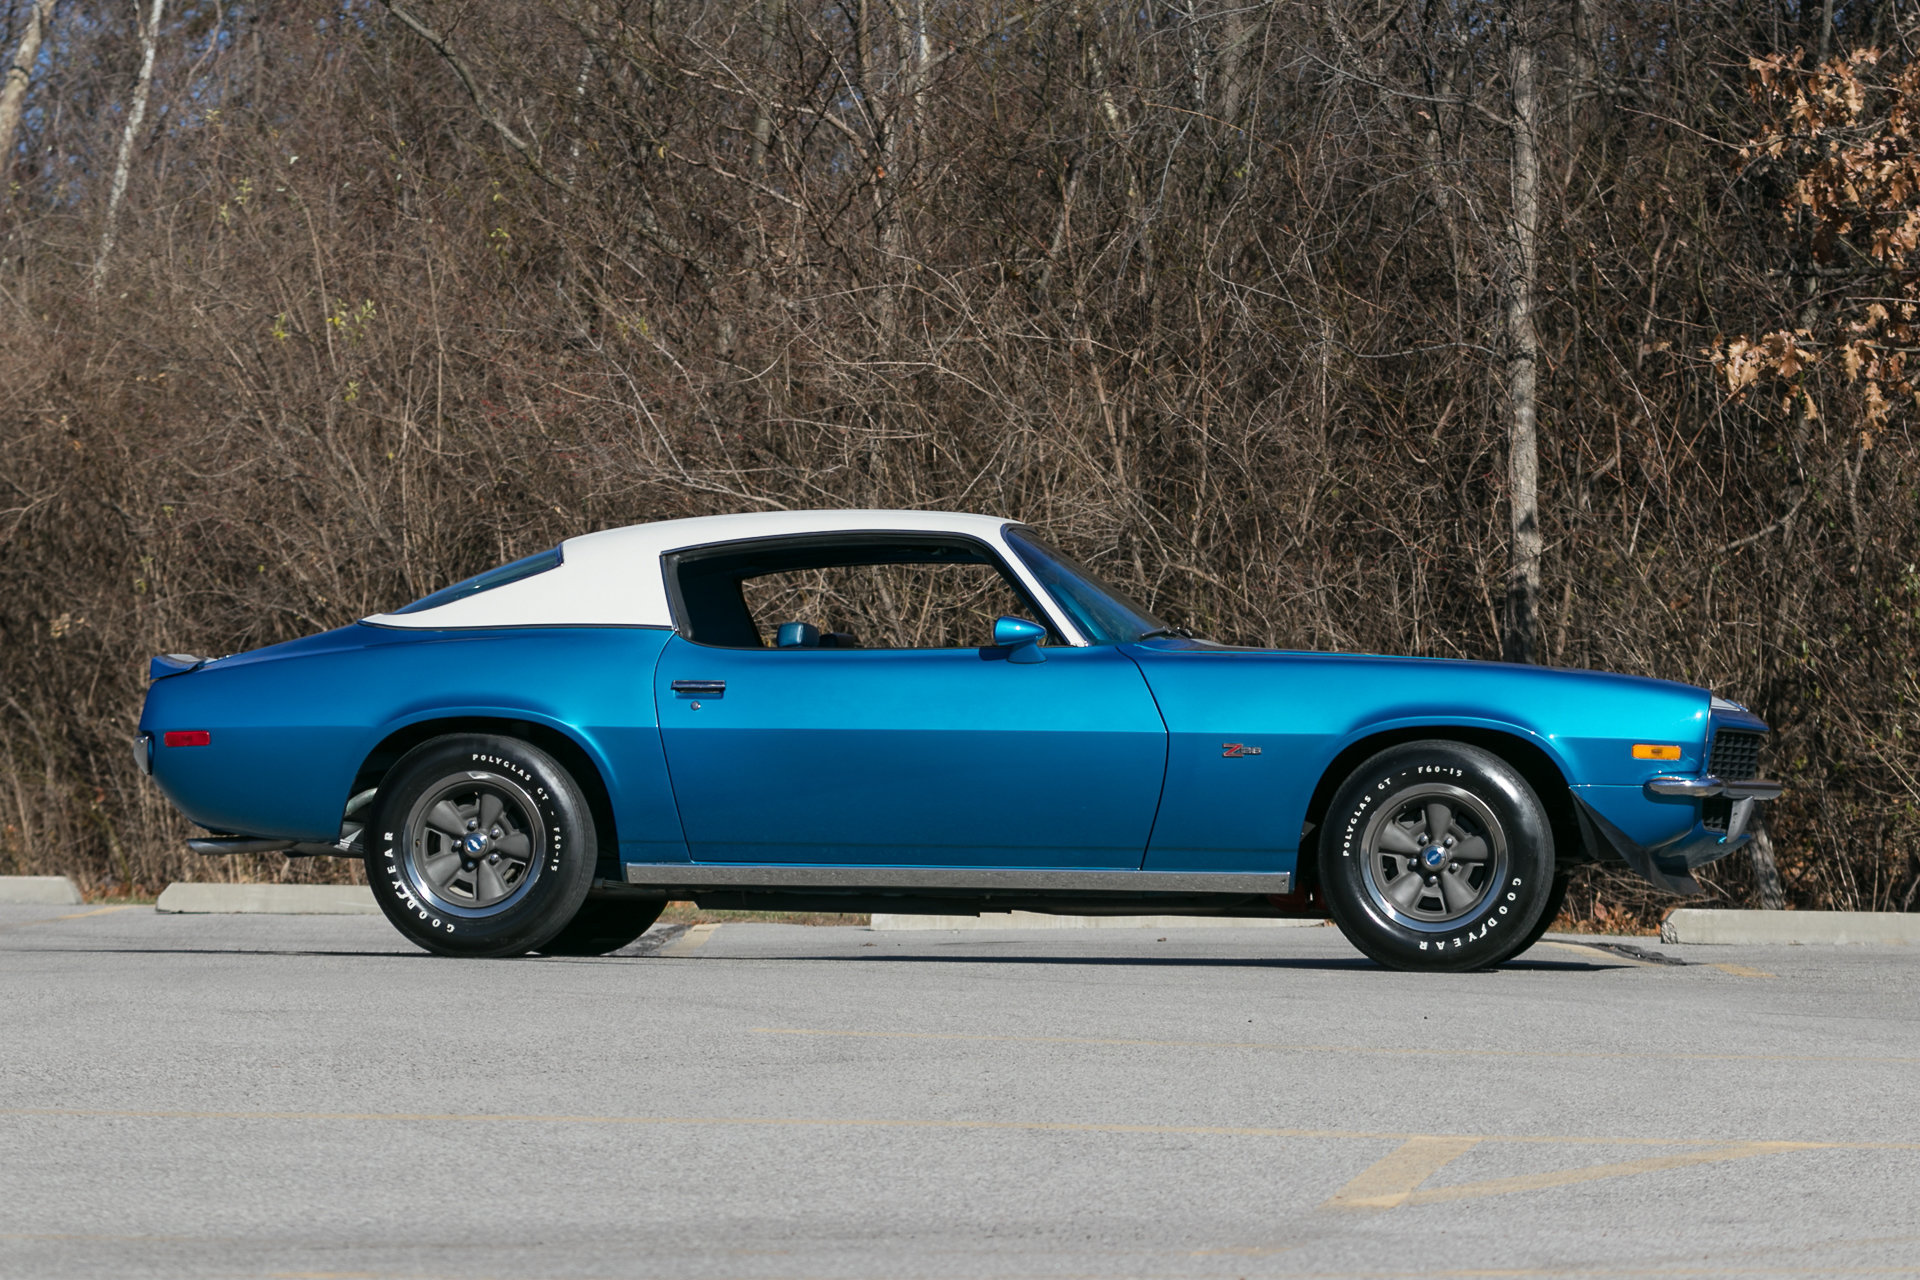 1970 chevrolet camaro z28 for sale 75522 mcg. Black Bedroom Furniture Sets. Home Design Ideas